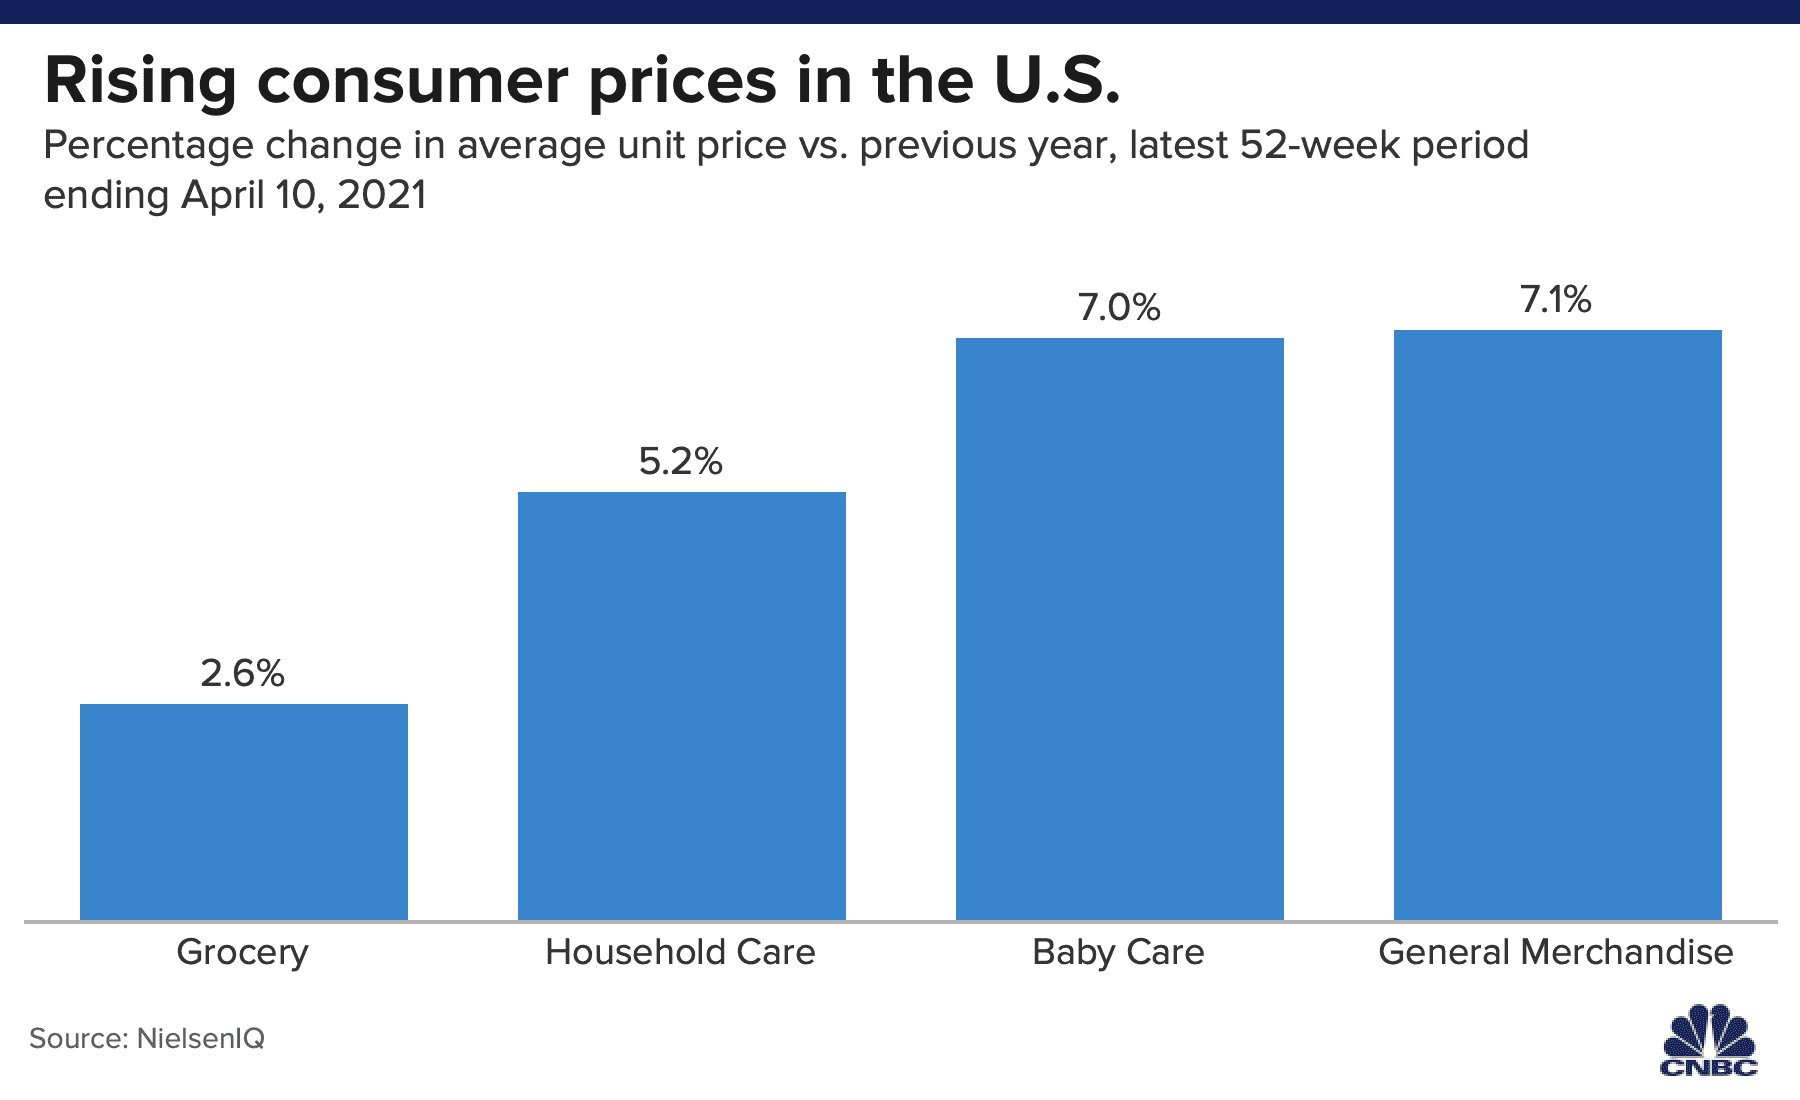 Attention shoppers: Price hikes are ahead, but consumer companies hope you won't notice